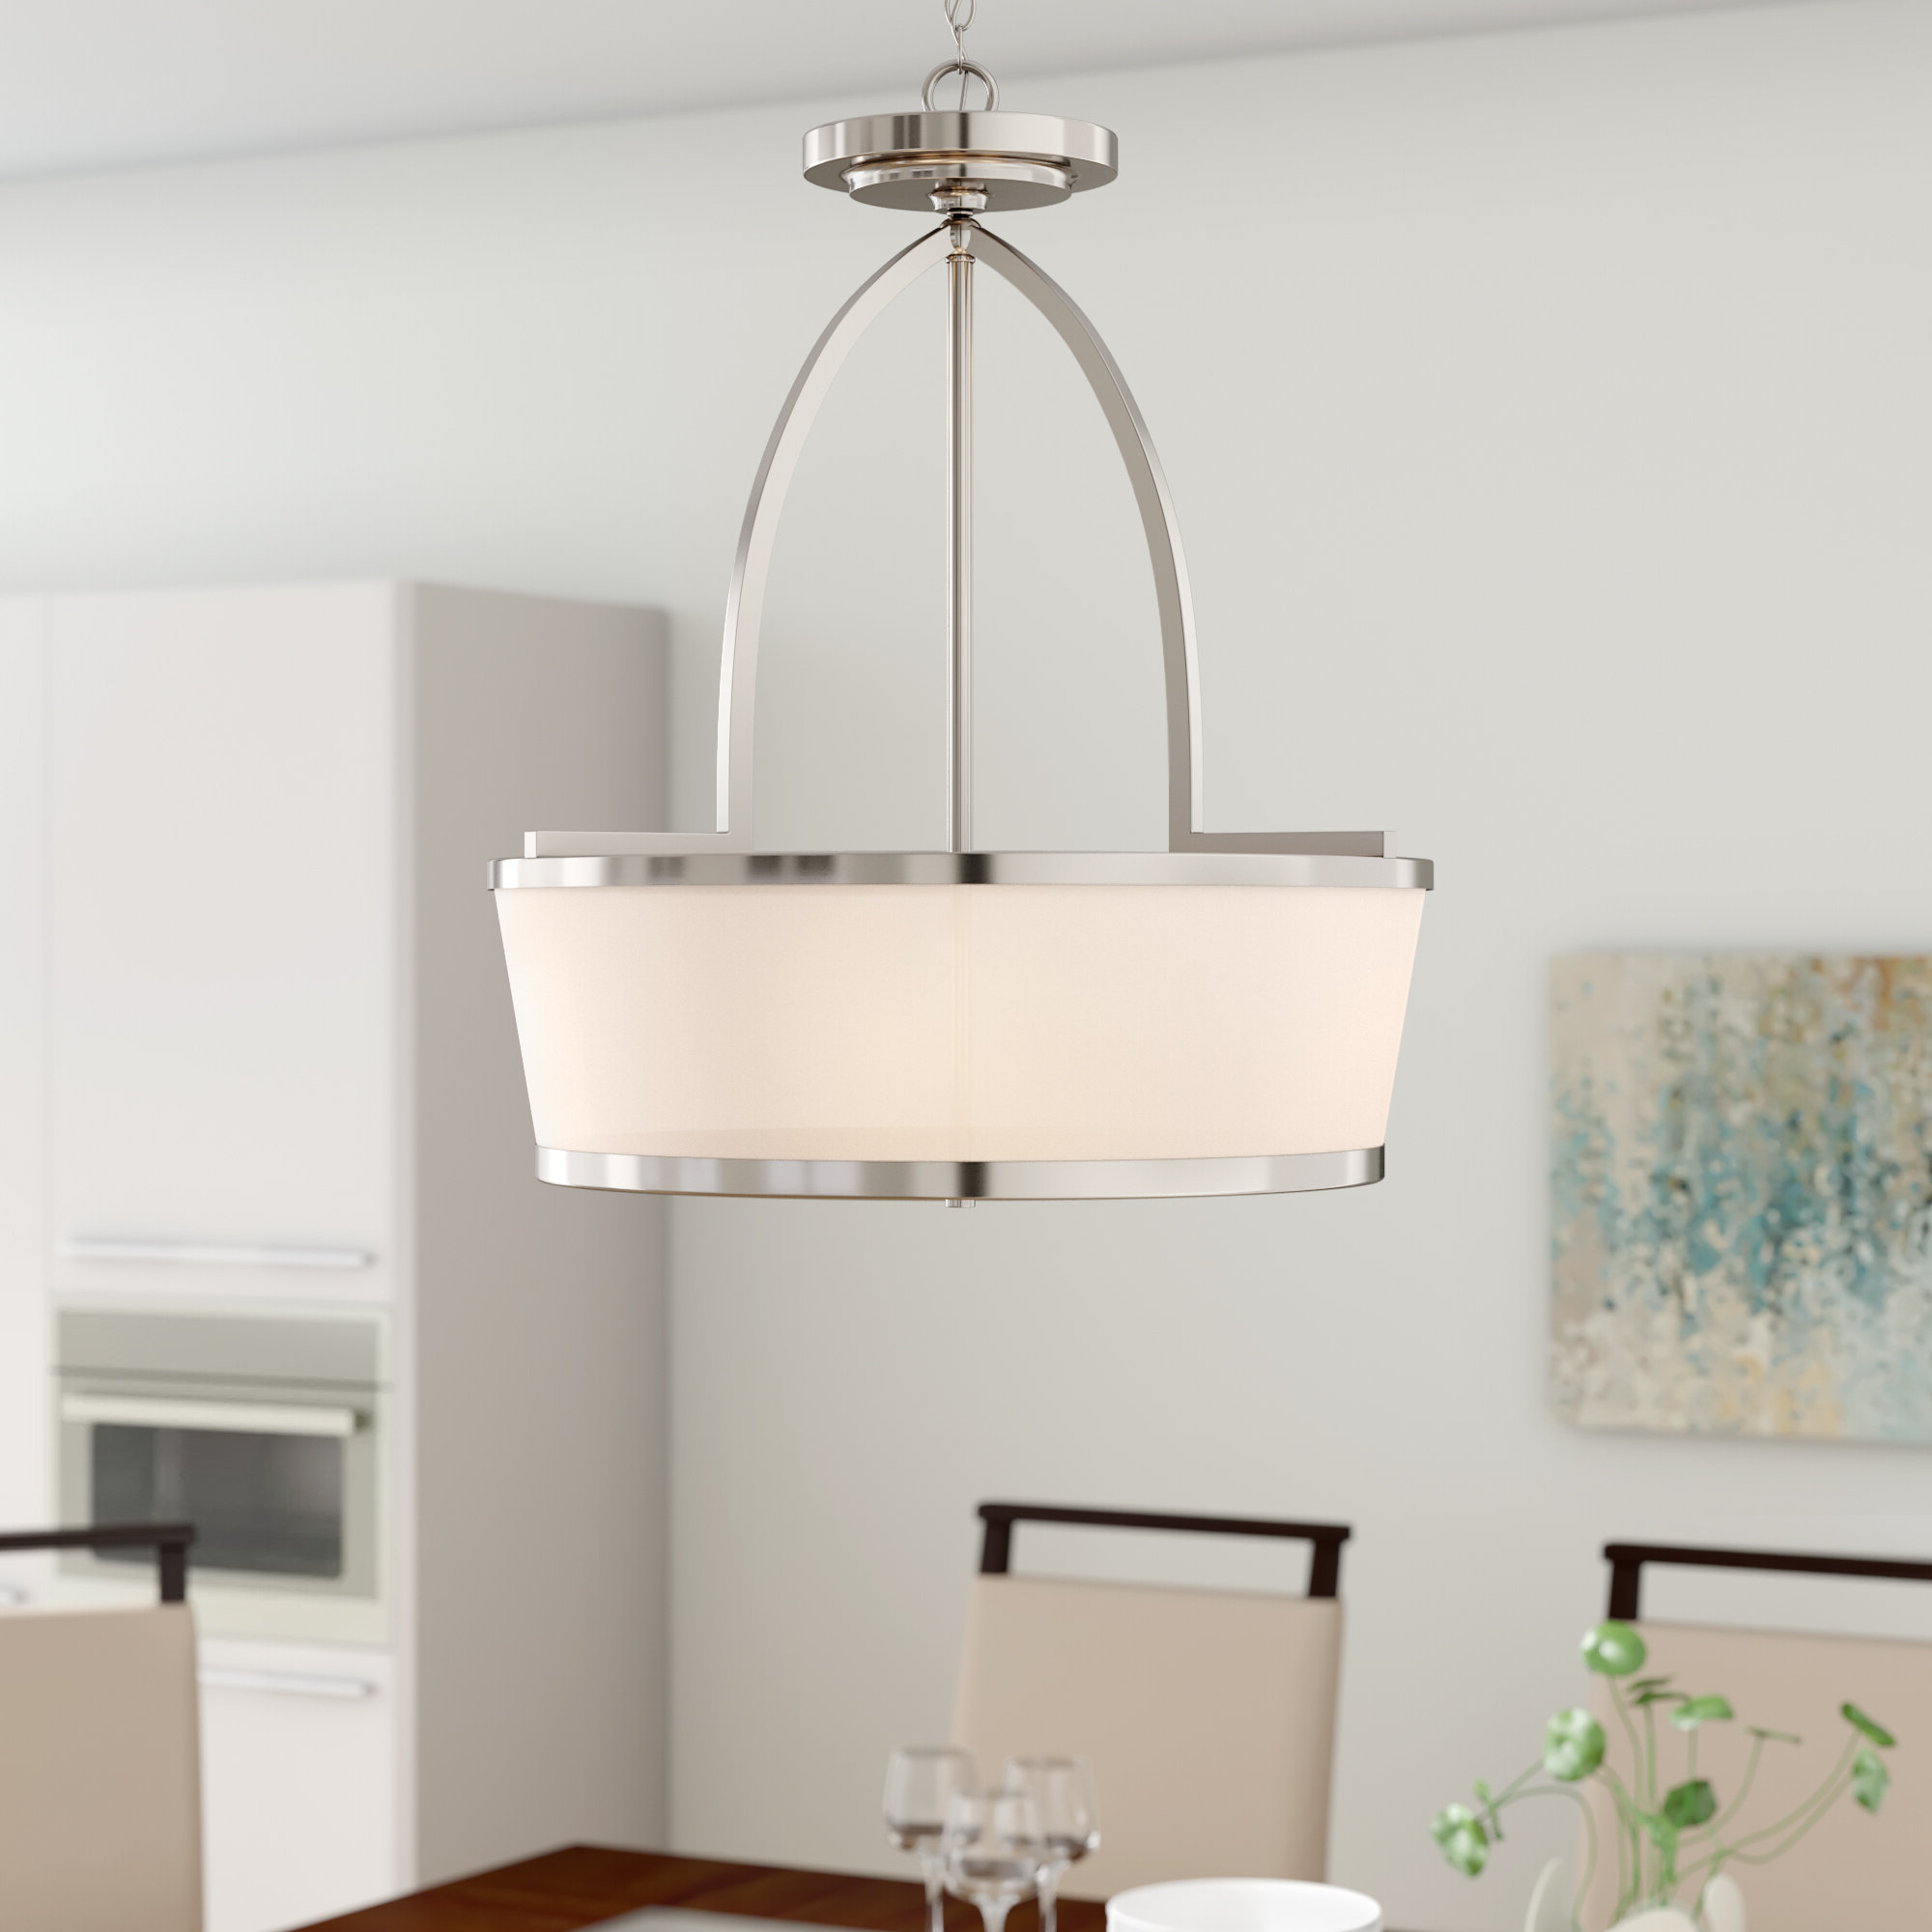 Kasey 3-Light Single Drum Pendants with Most Current Camacho 3-Light Single Drum Pendant